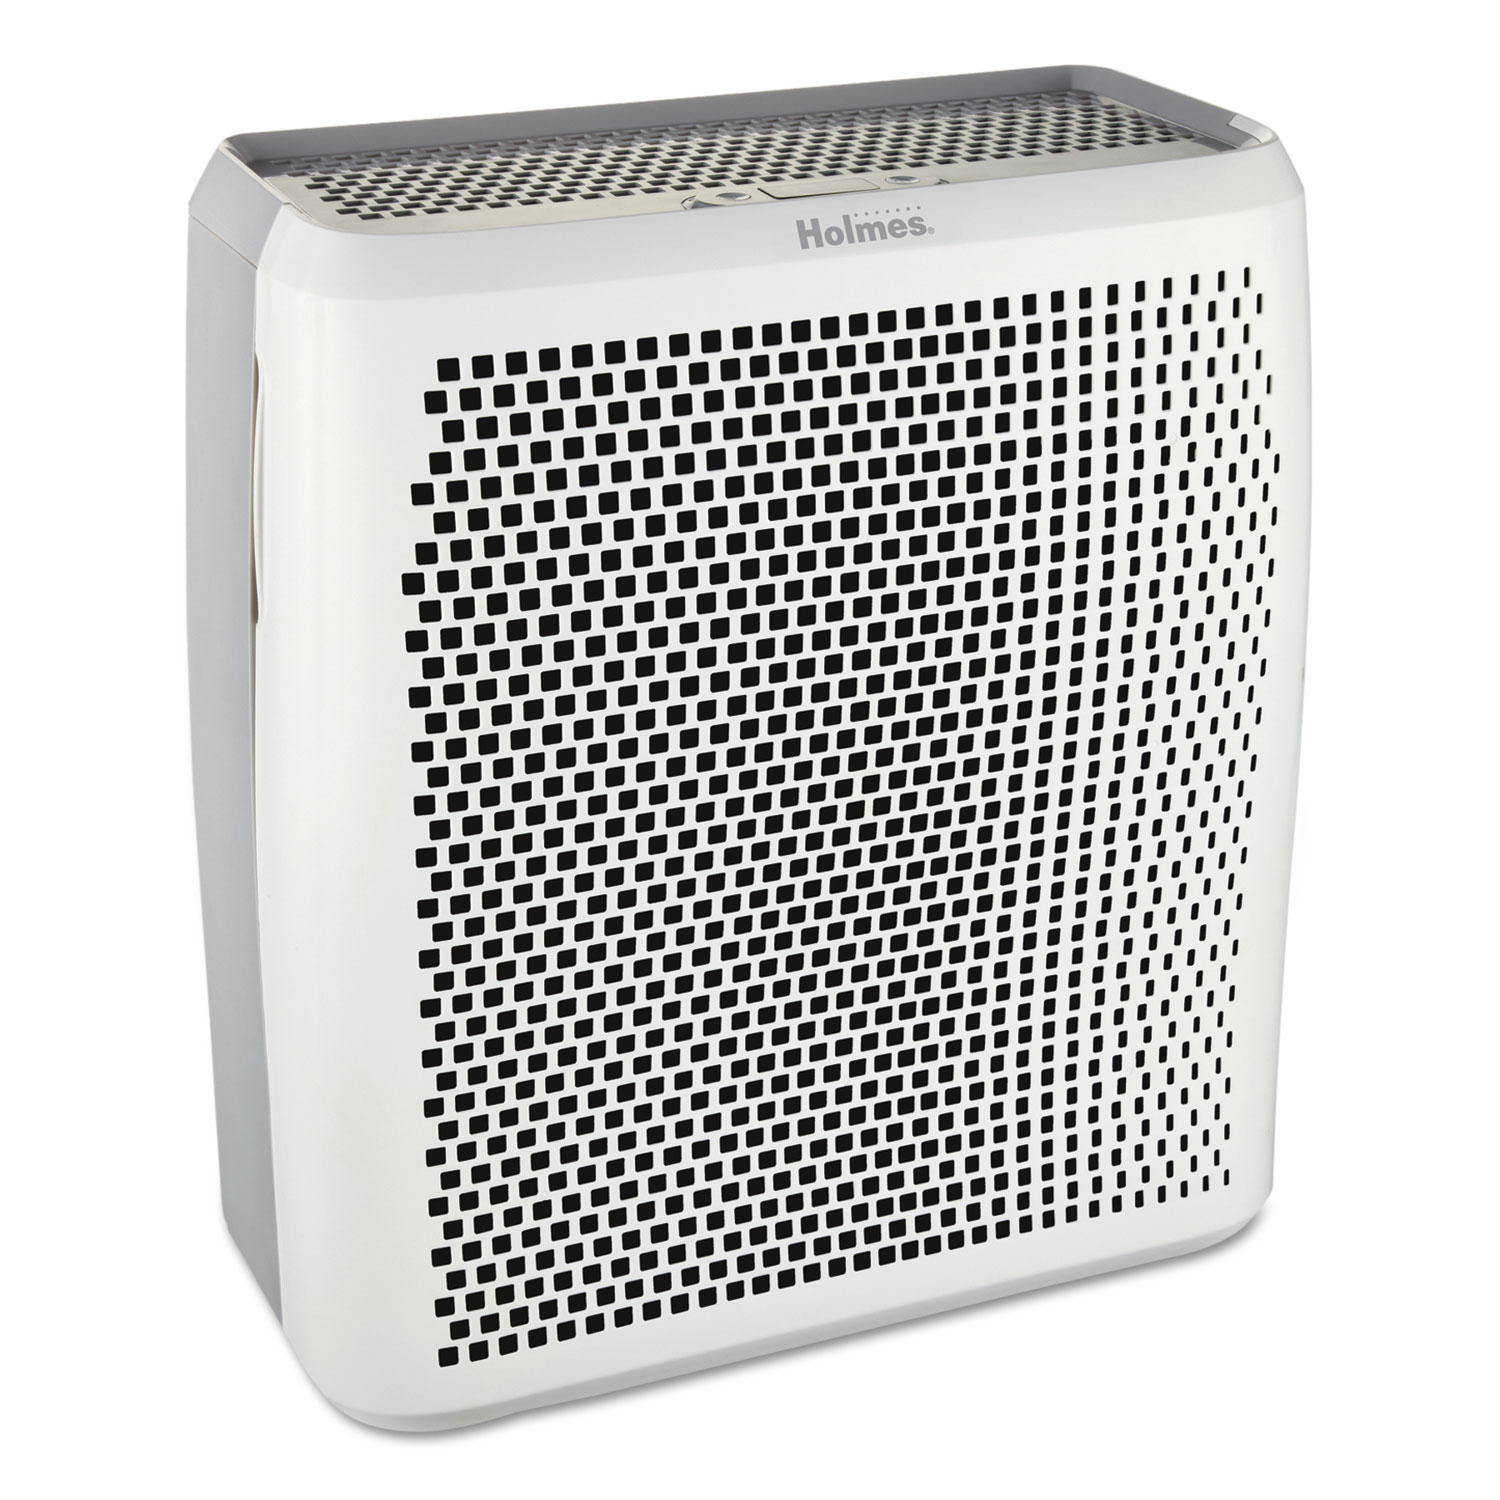 Holmes True HEPA Large Room Air Purifier, 430 sq ft Room Capacity, White - True HEPA large room air purifier.